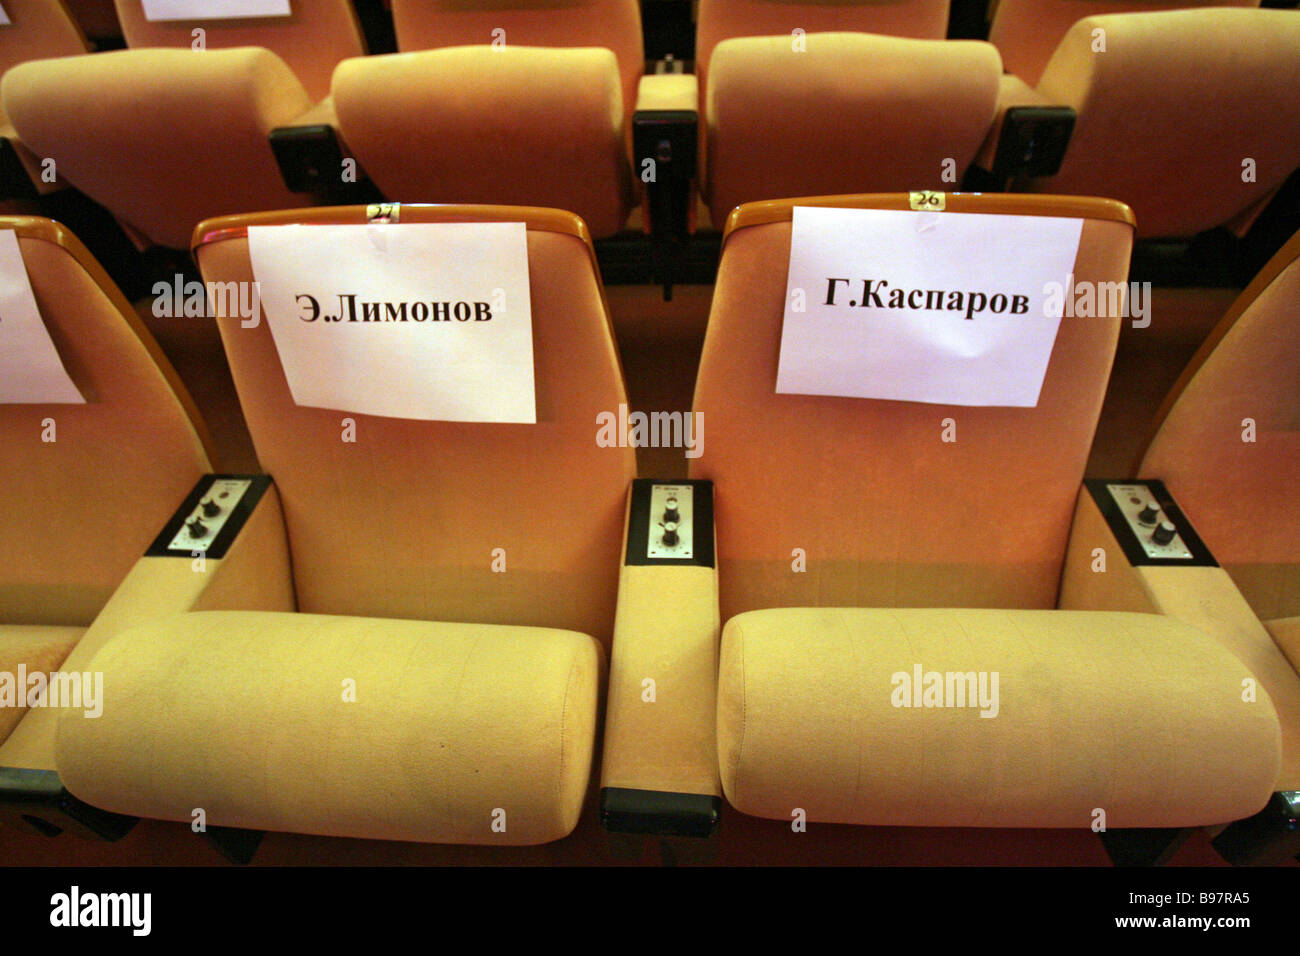 Seats reserved for Eduard Limonov leader of the National